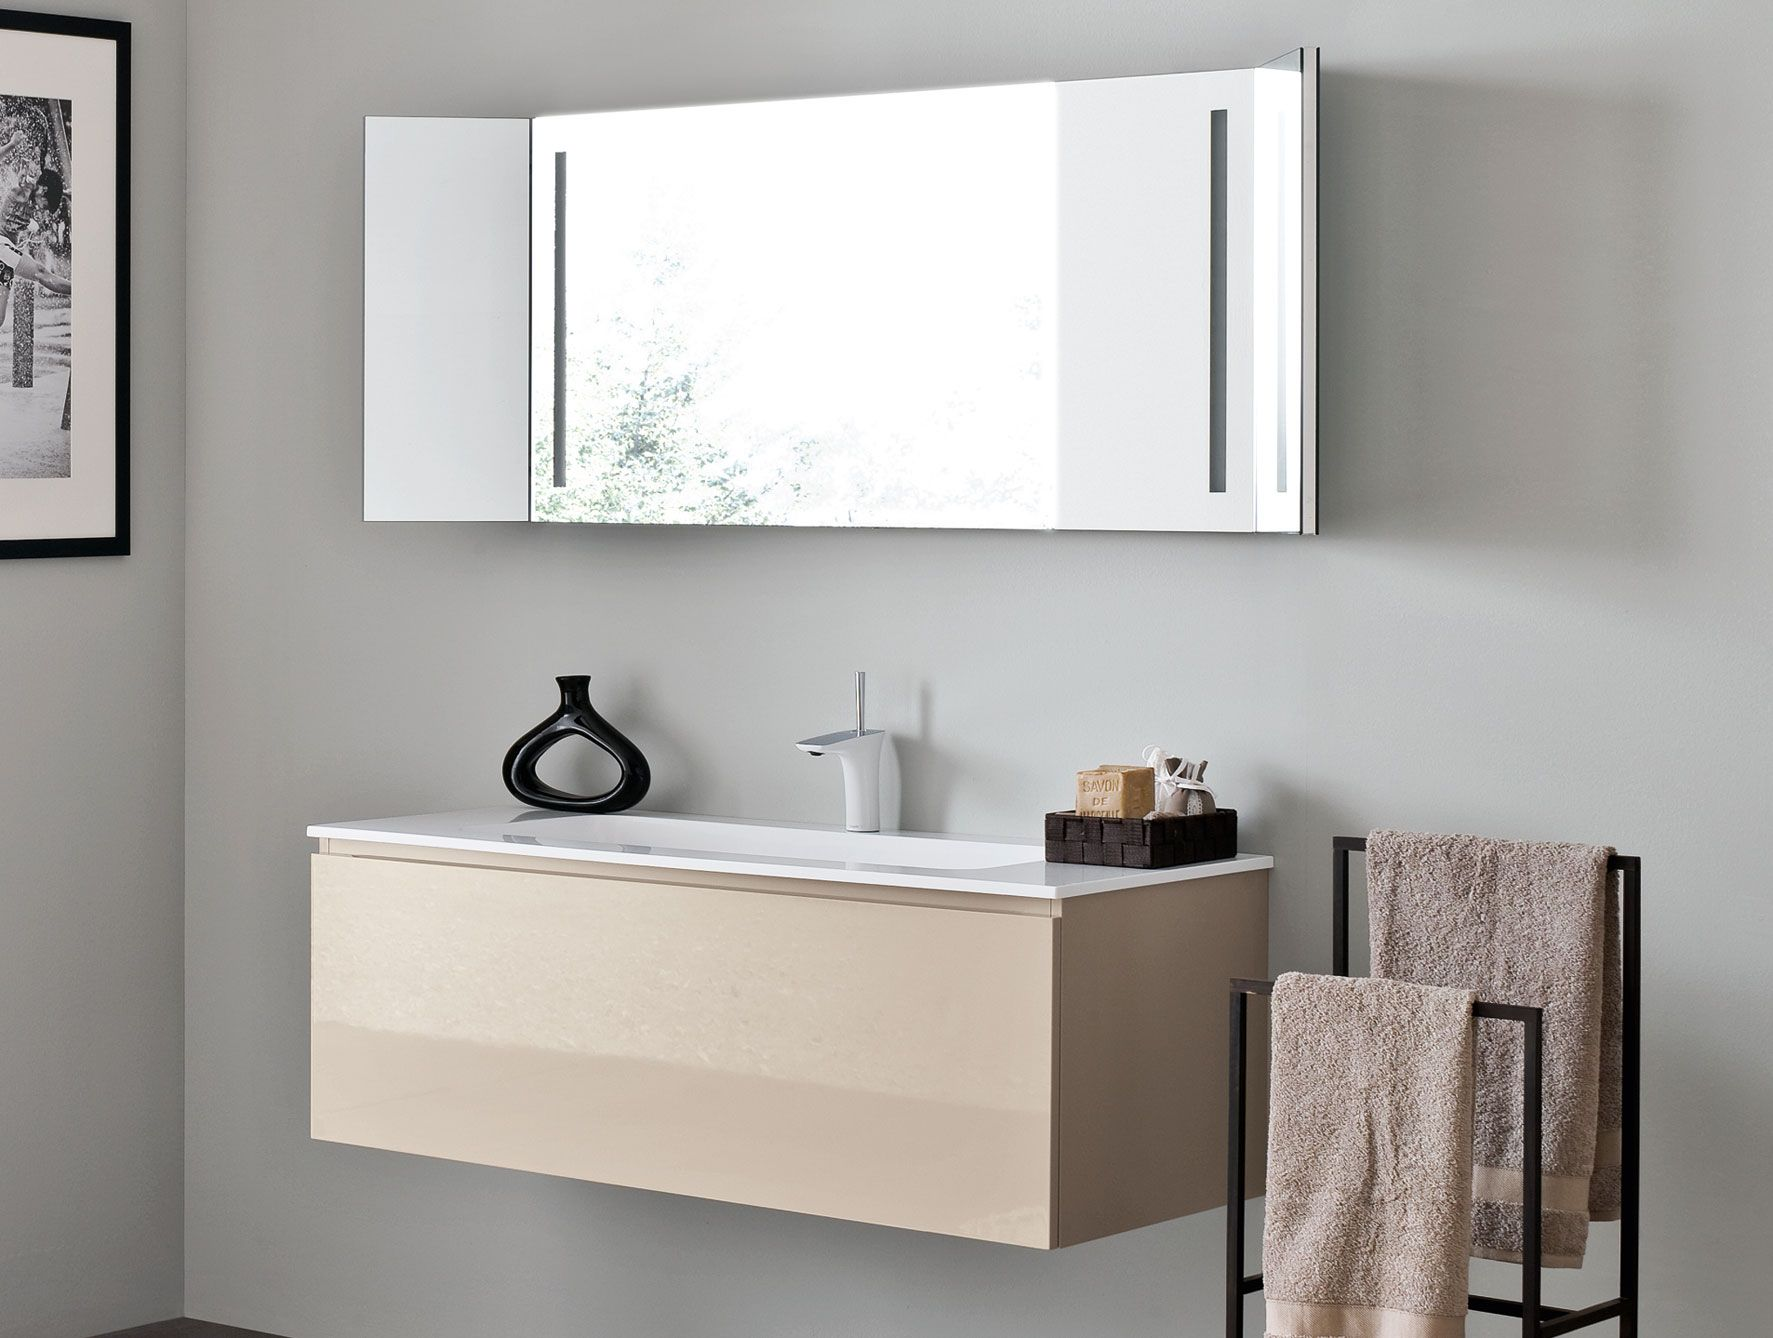 Curved Bathroom Vanity Cabinet Images Of Floating Bathroom Vanities Google Search Bathrooms